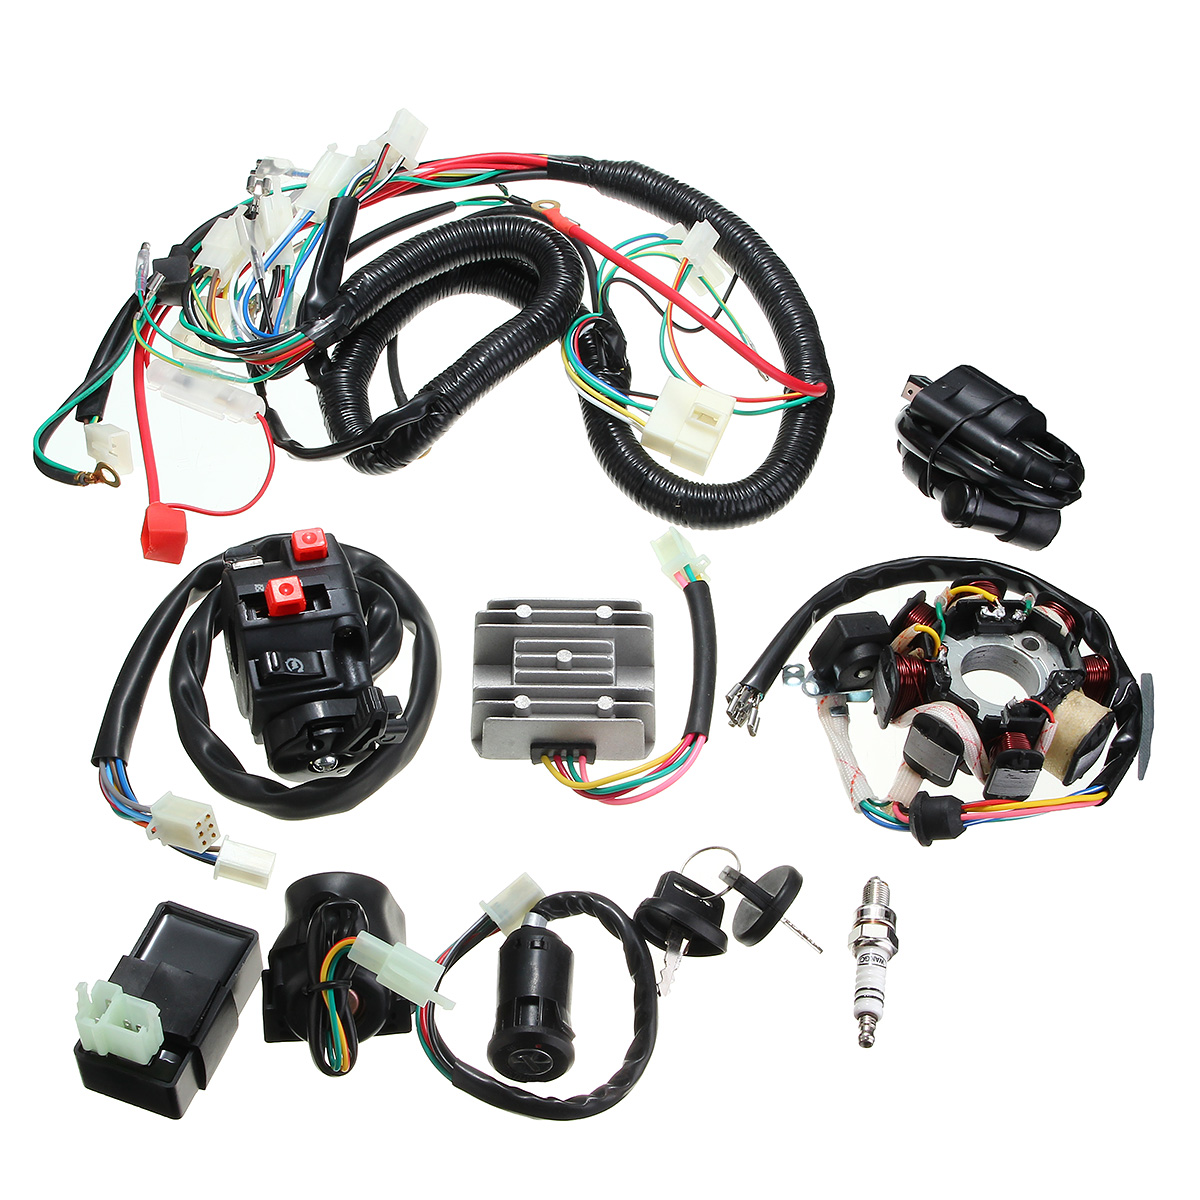 125cc Atv Wiring Residential Electrical Symbols Qiye Engine Diagram 150cc 200cc 250cc Quad Electric Cdi Coil Wire Harness Stator Assembly Set Alex Nld Loncin